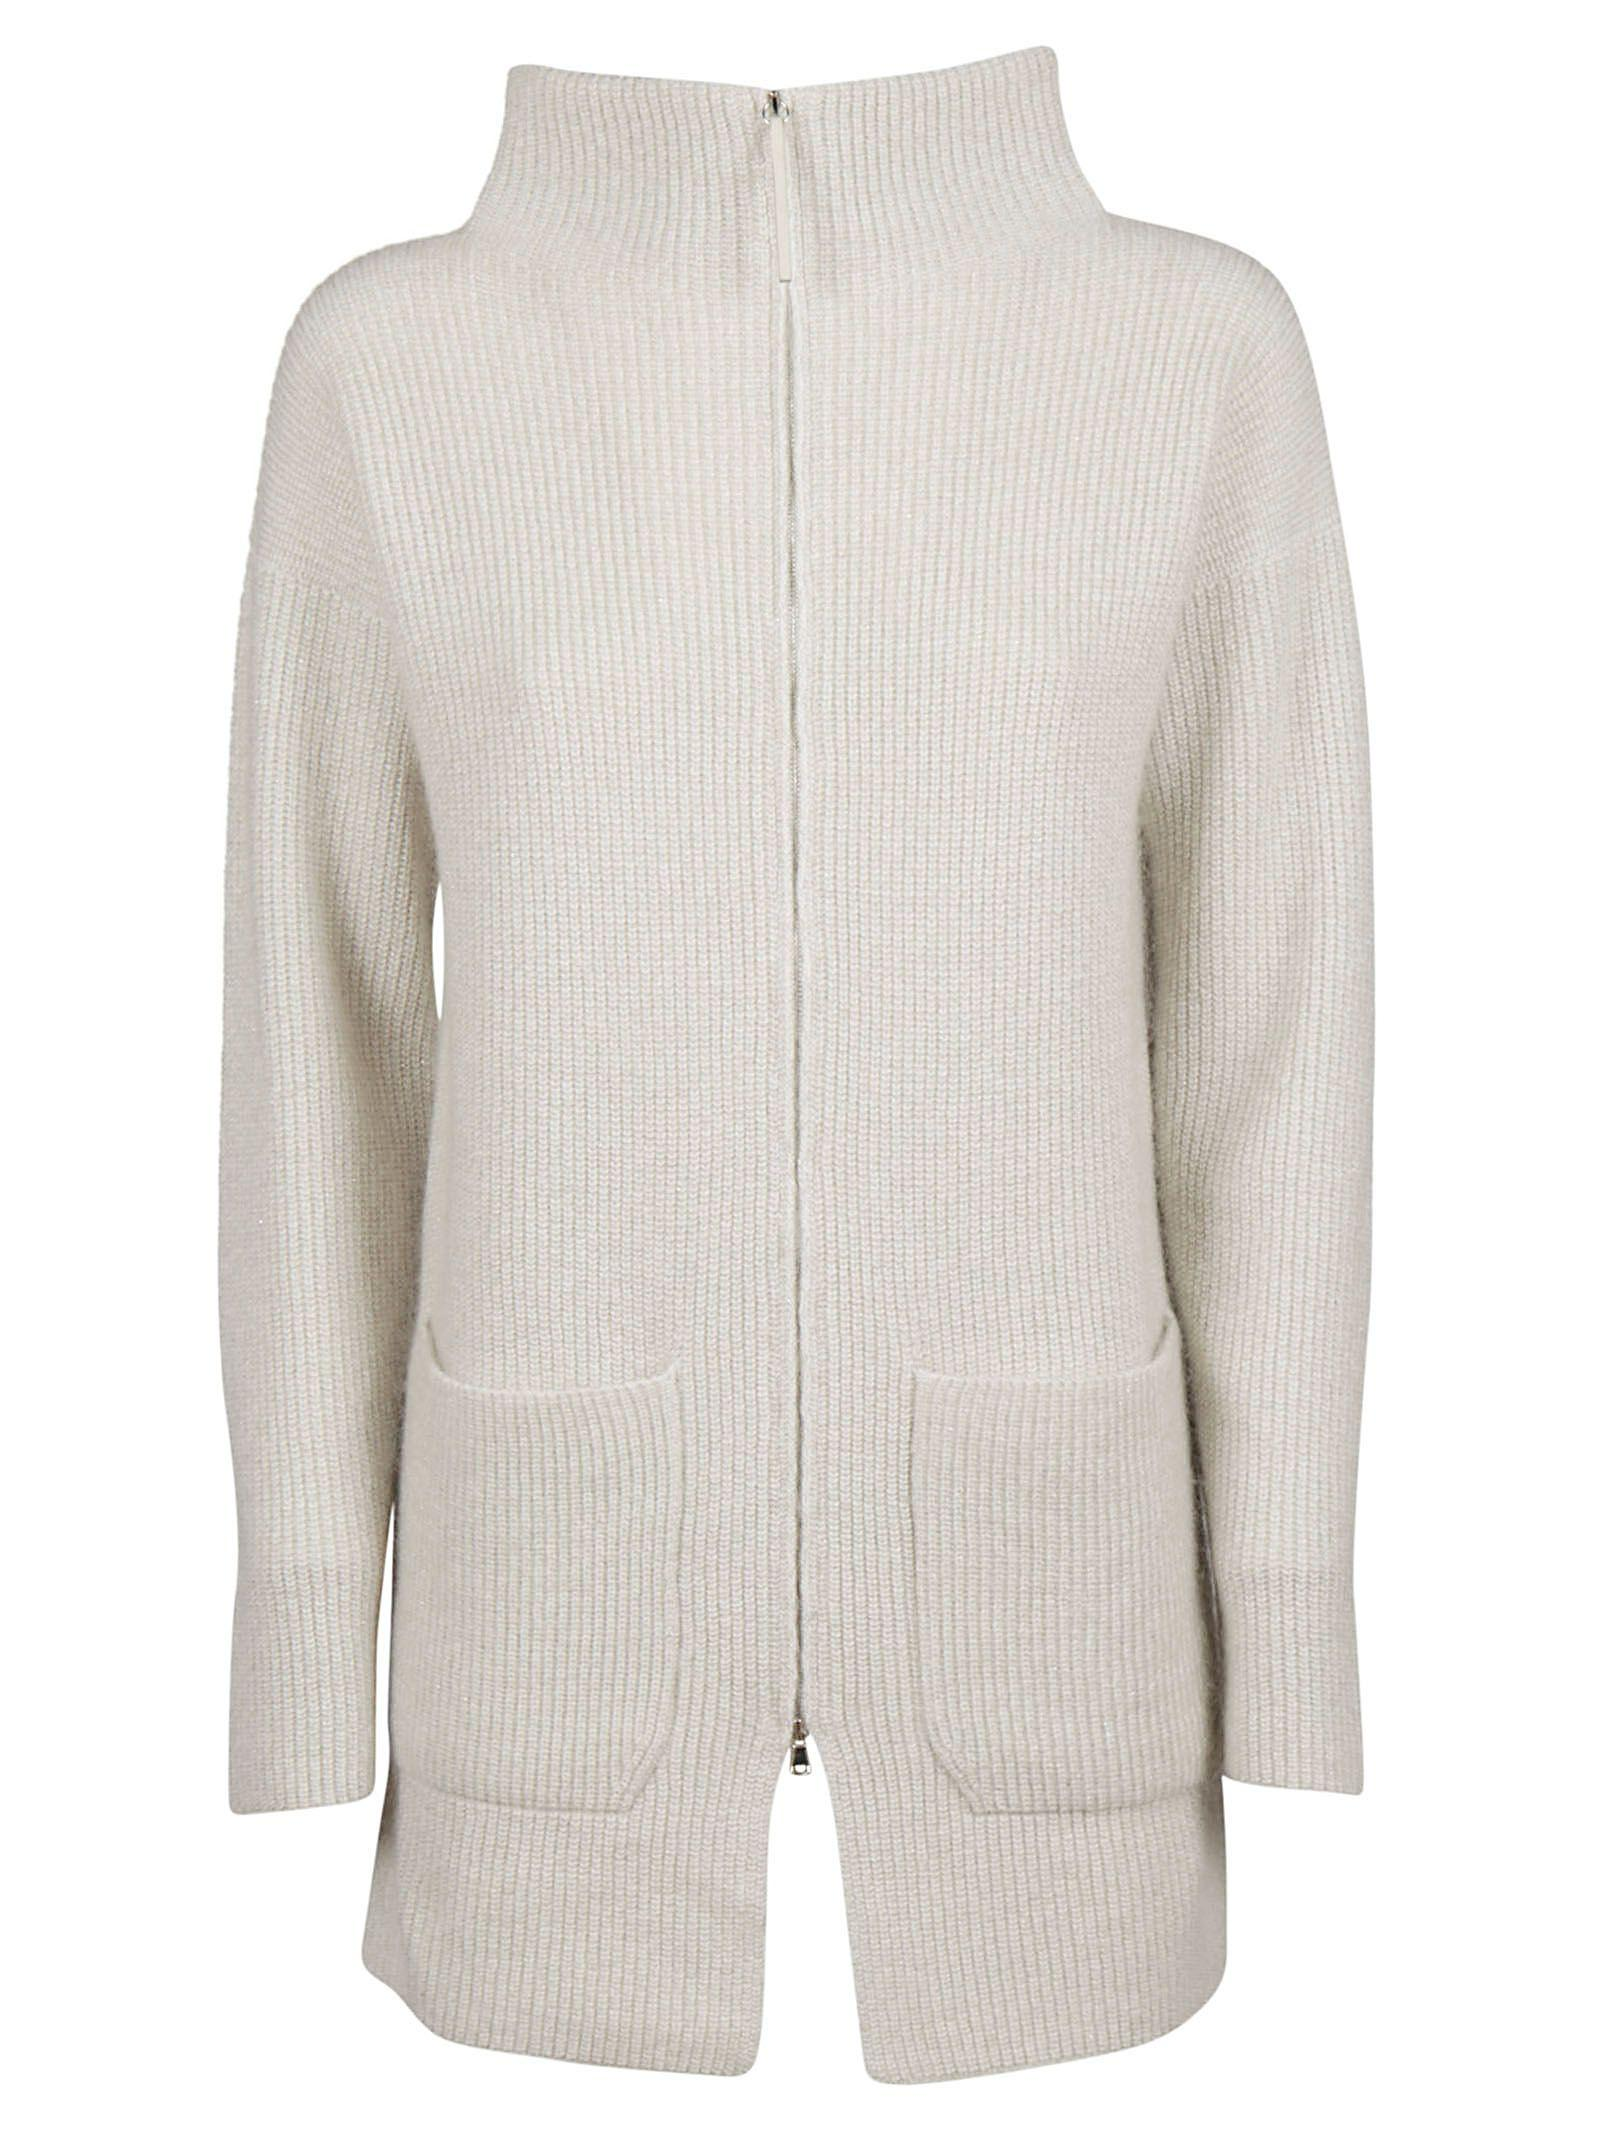 Fabiana Filippi Zip-up Cardigan In Off White